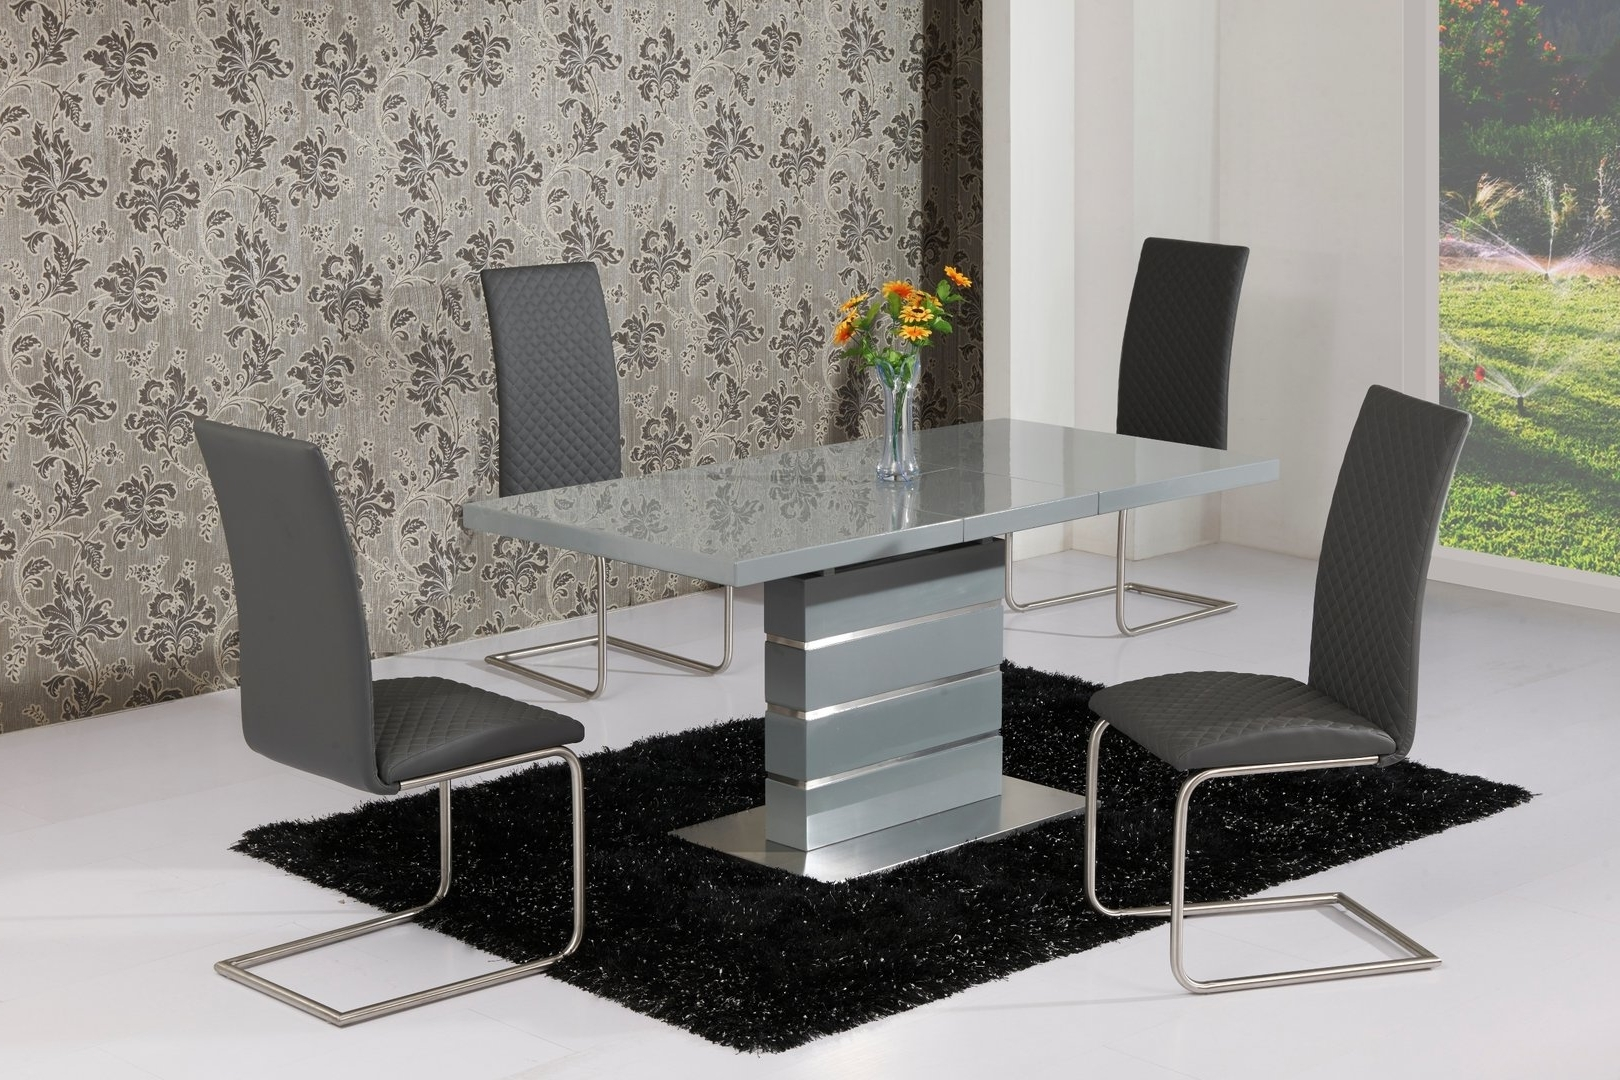 Extending Grey High Gloss Dining Table And 4 Grey Chairs Pertaining To Well Liked Grey Gloss Dining Tables (Gallery 1 of 25)